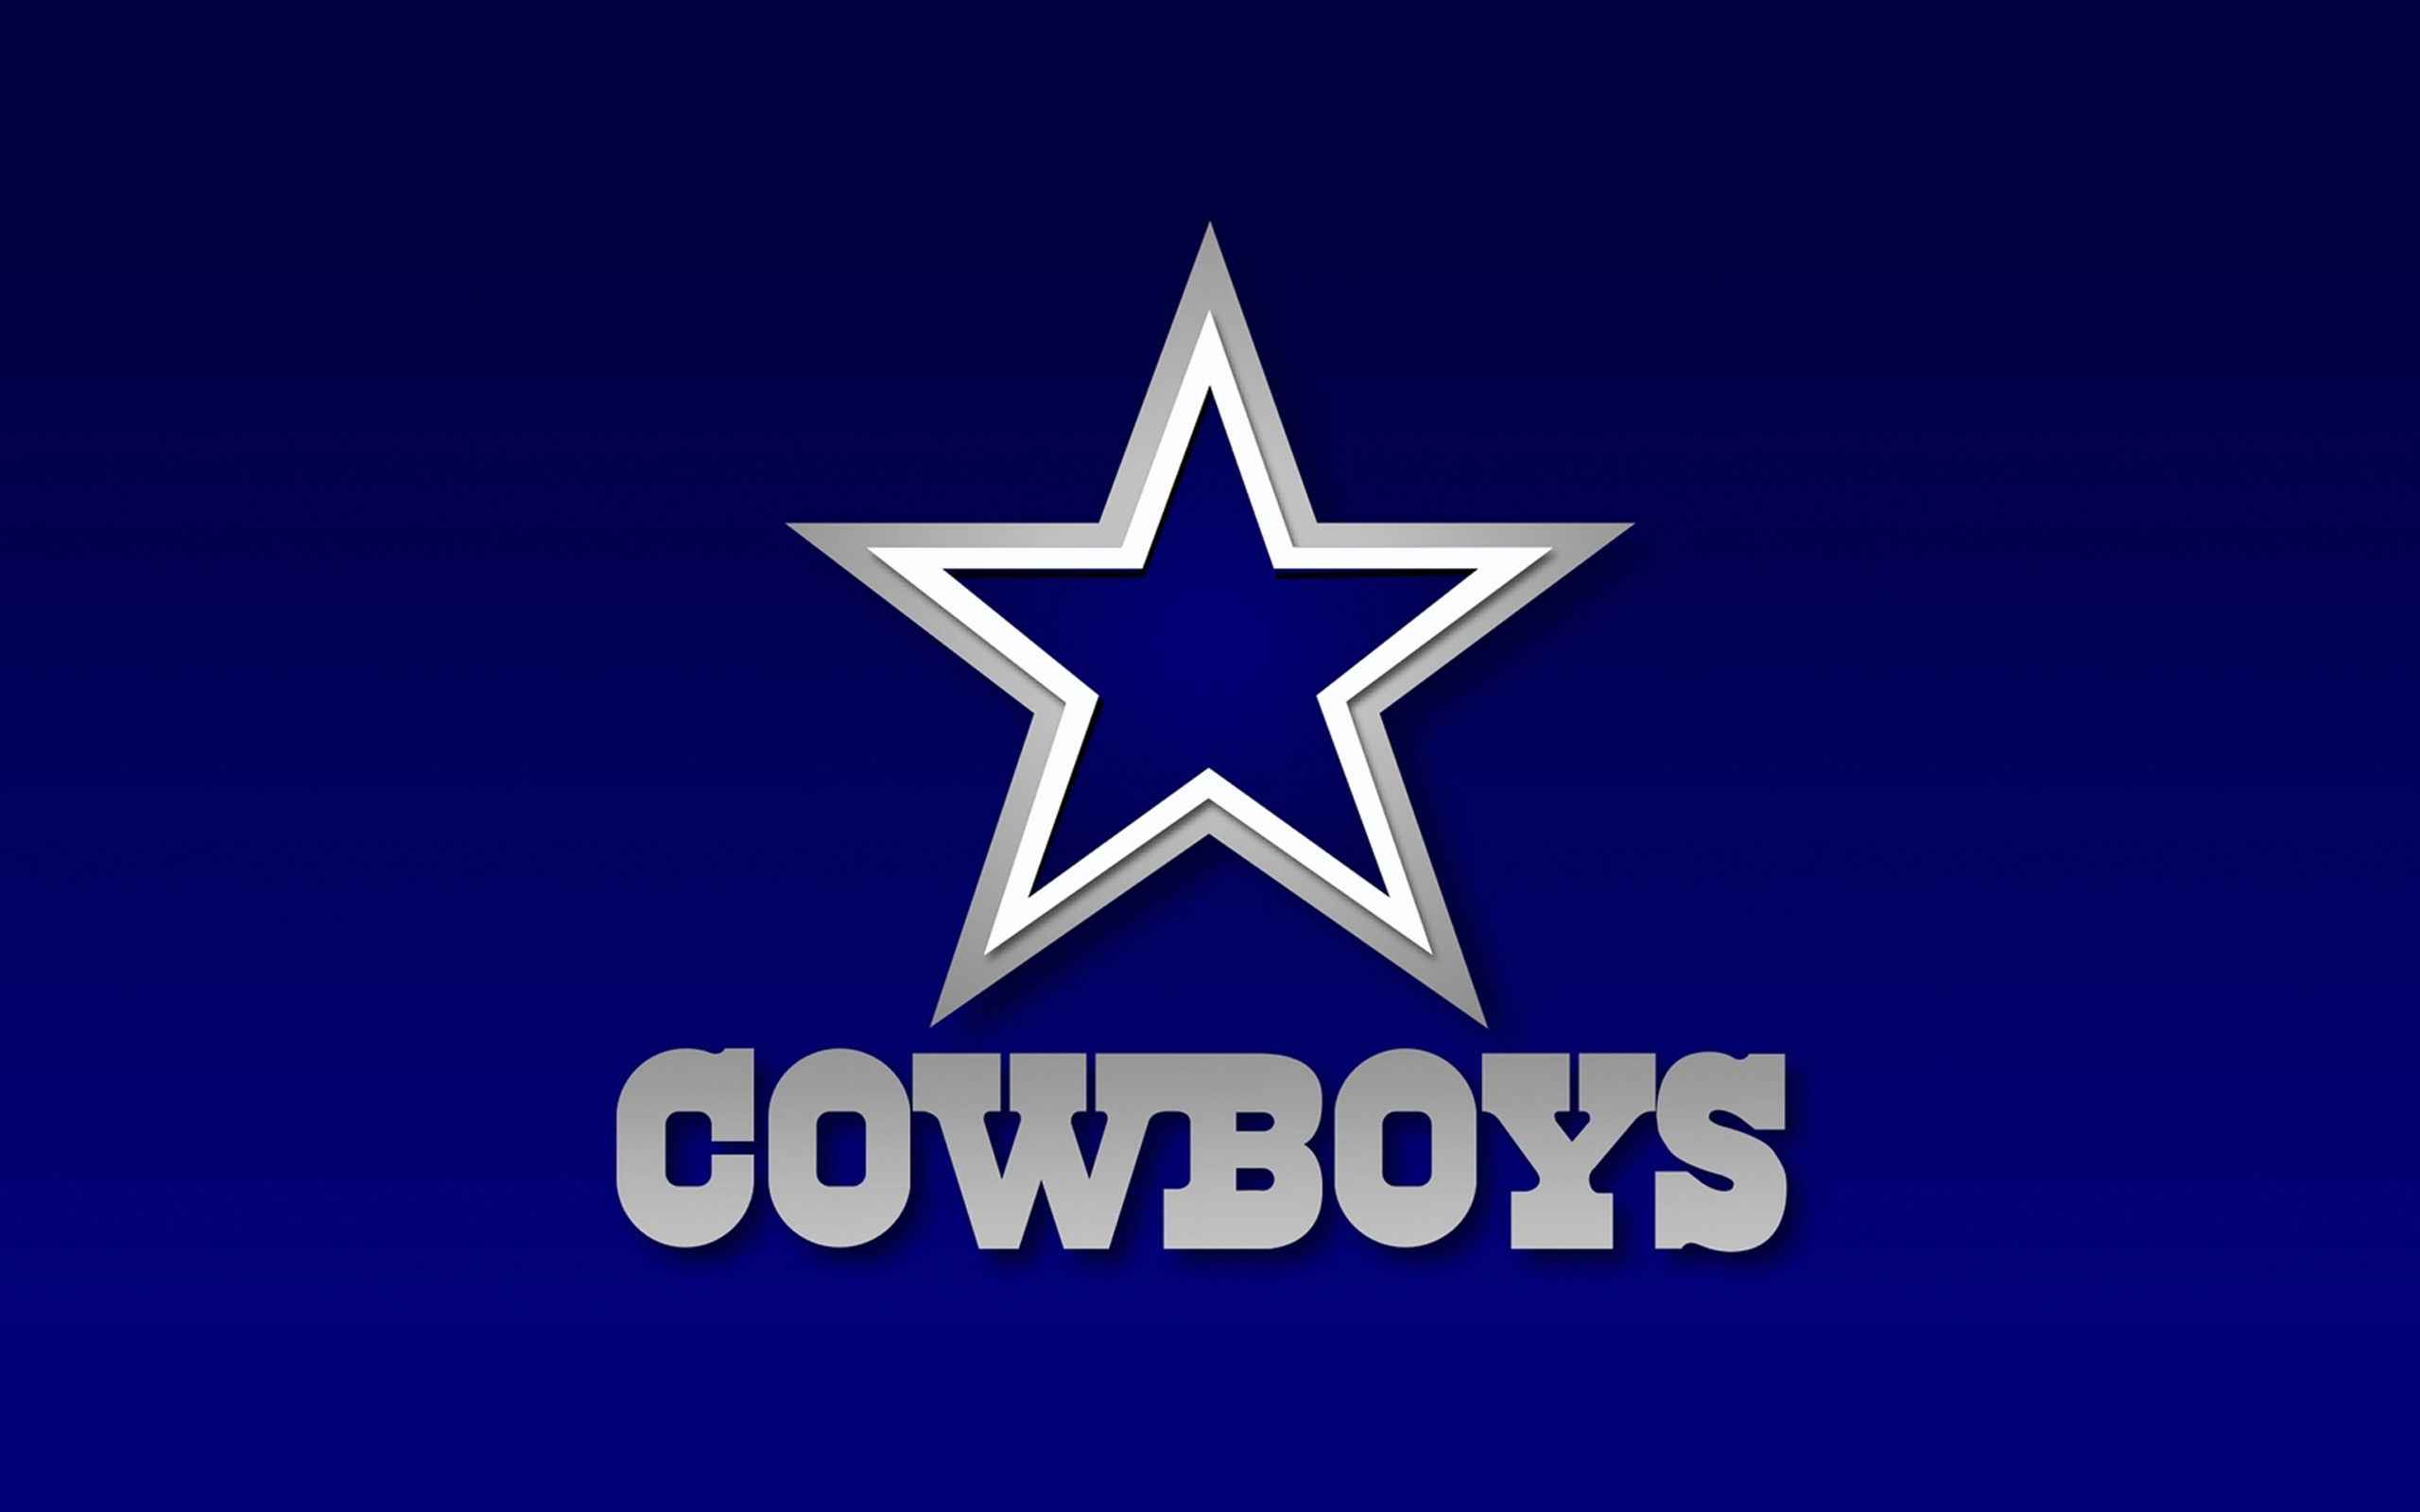 Dallas Cowboys Pictures